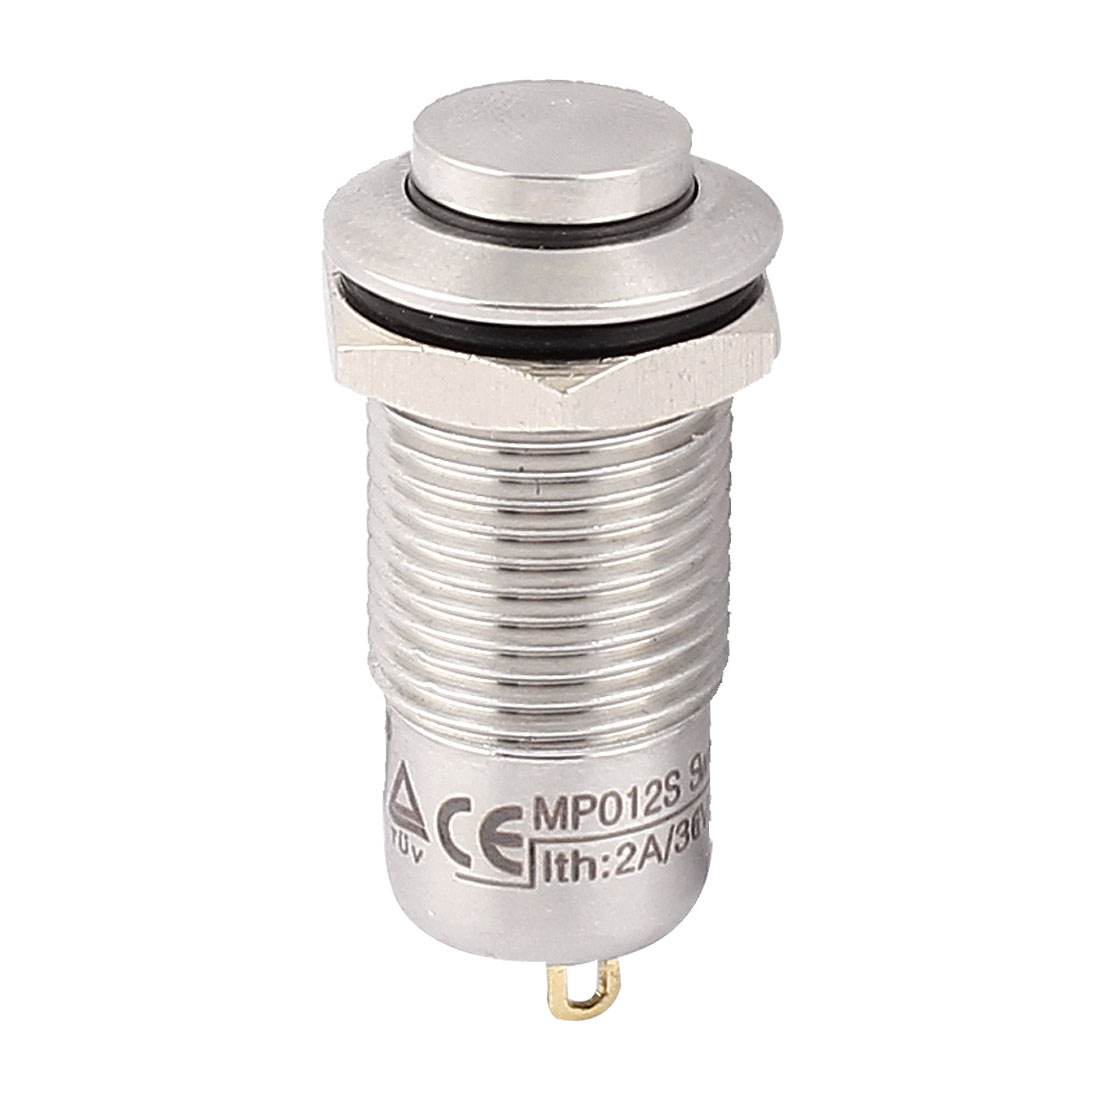 12mm Mounted Thread 2 Terminals SPST High Head Latching Push Button Switch